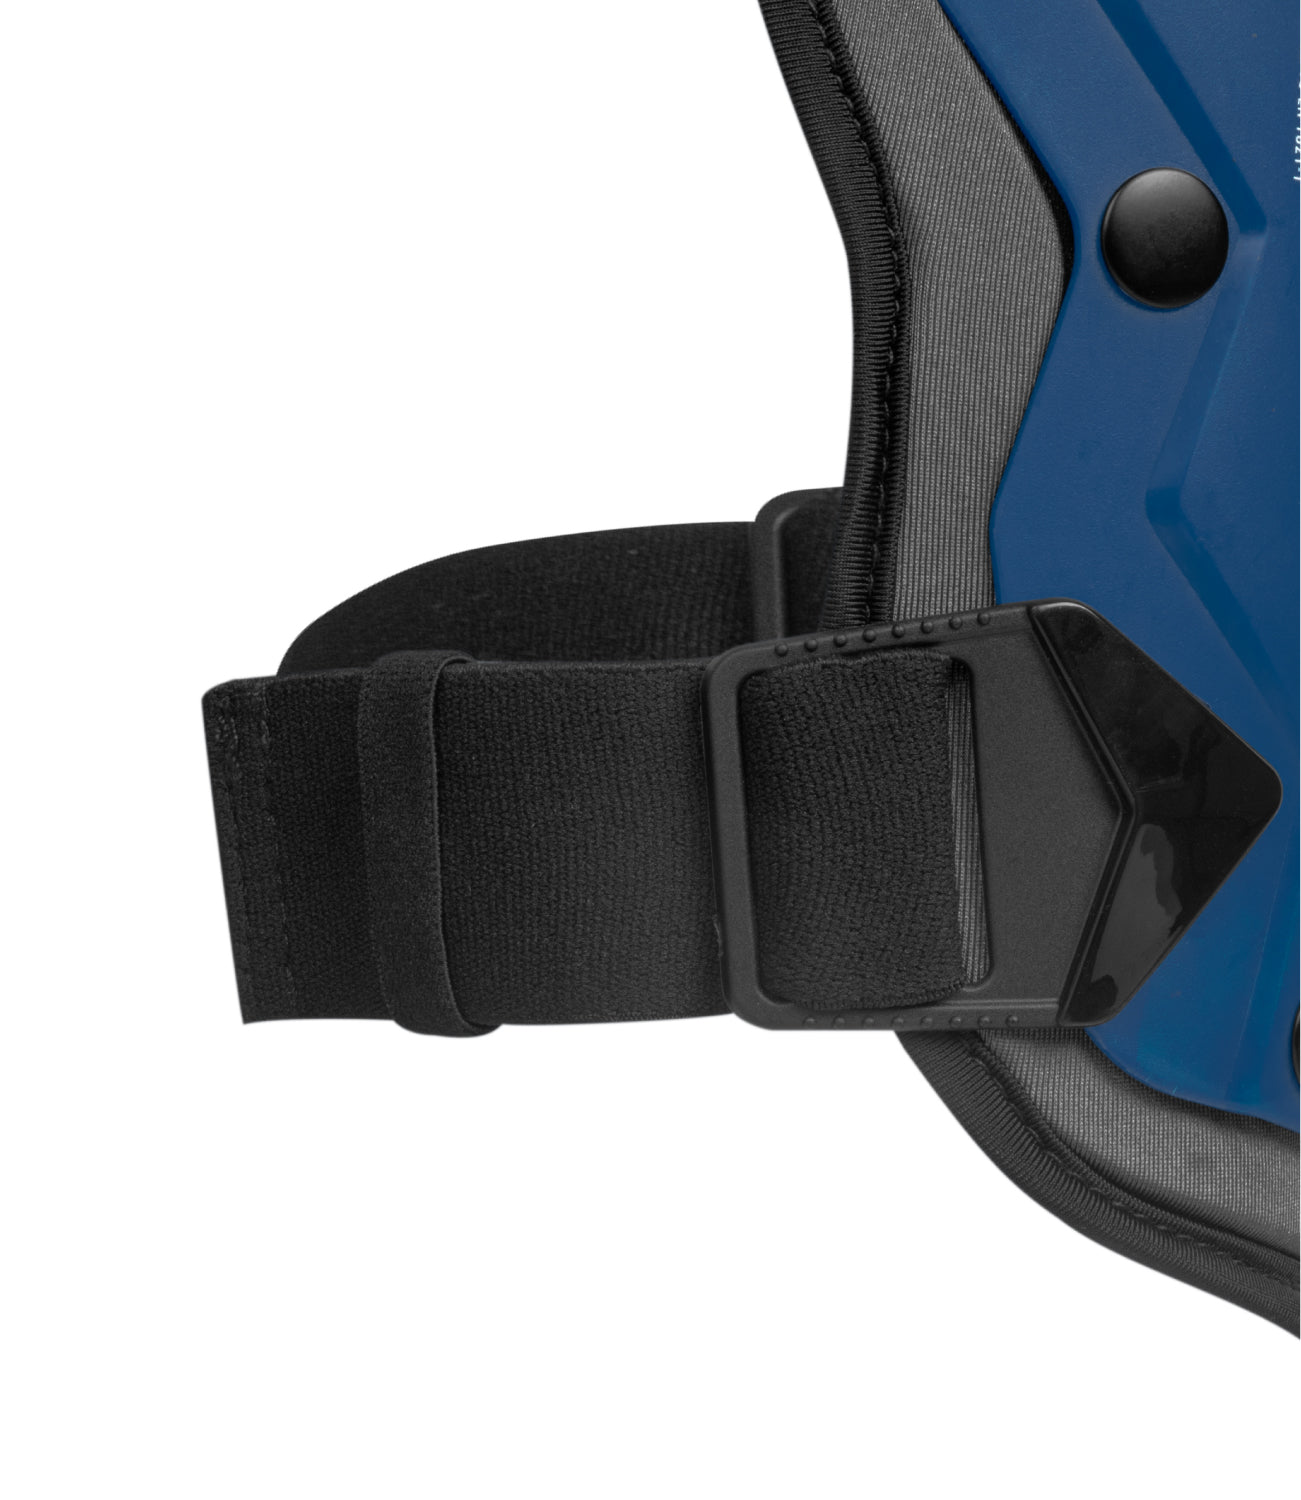 BASTION BIONIC KNEE GUARDS